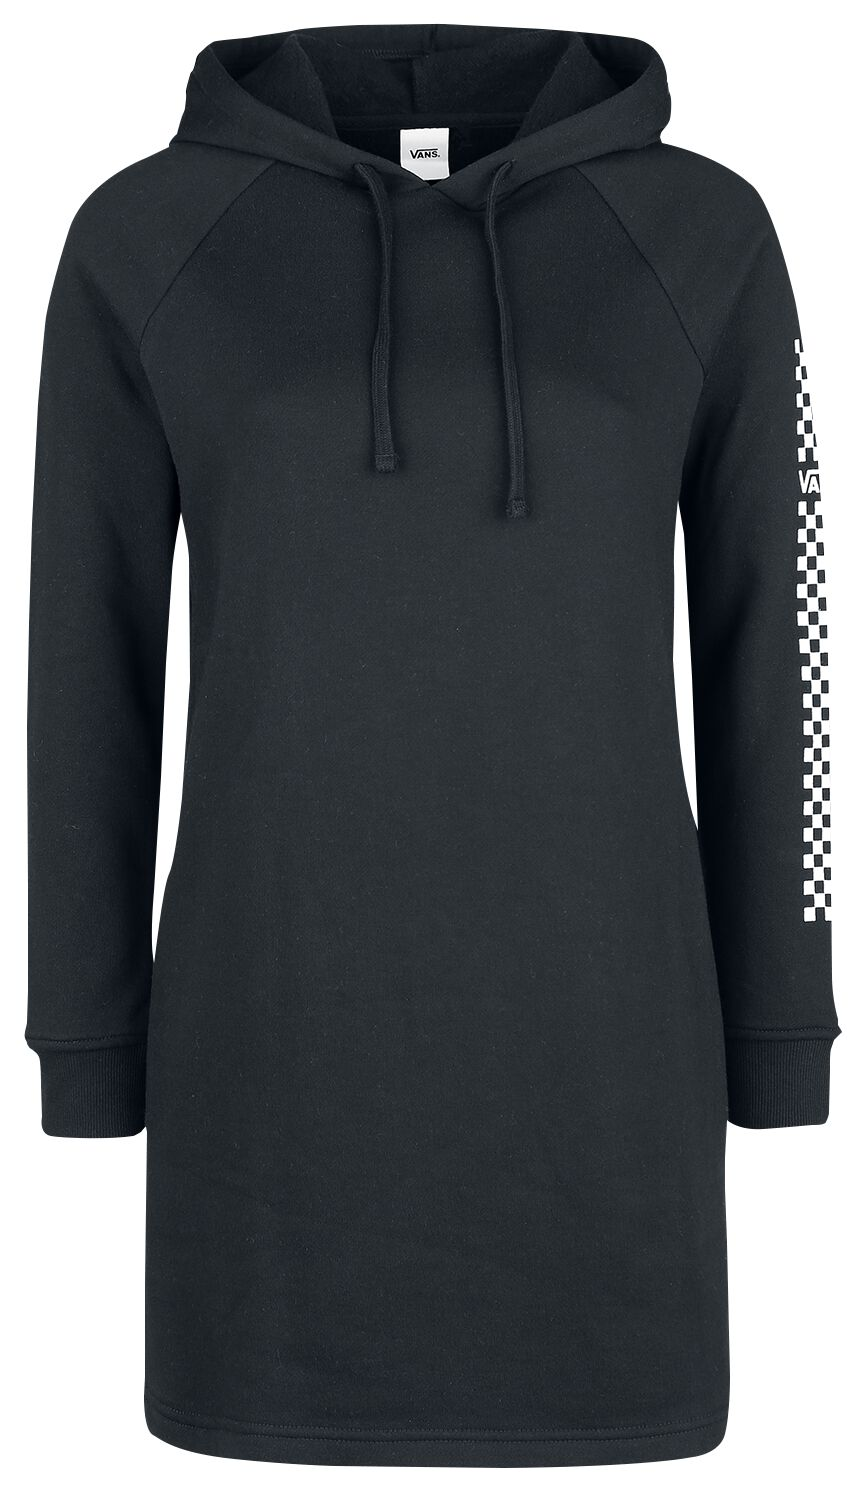 Image of   Vans Funday Hoodie Kjole Girlie hættetrøje sort